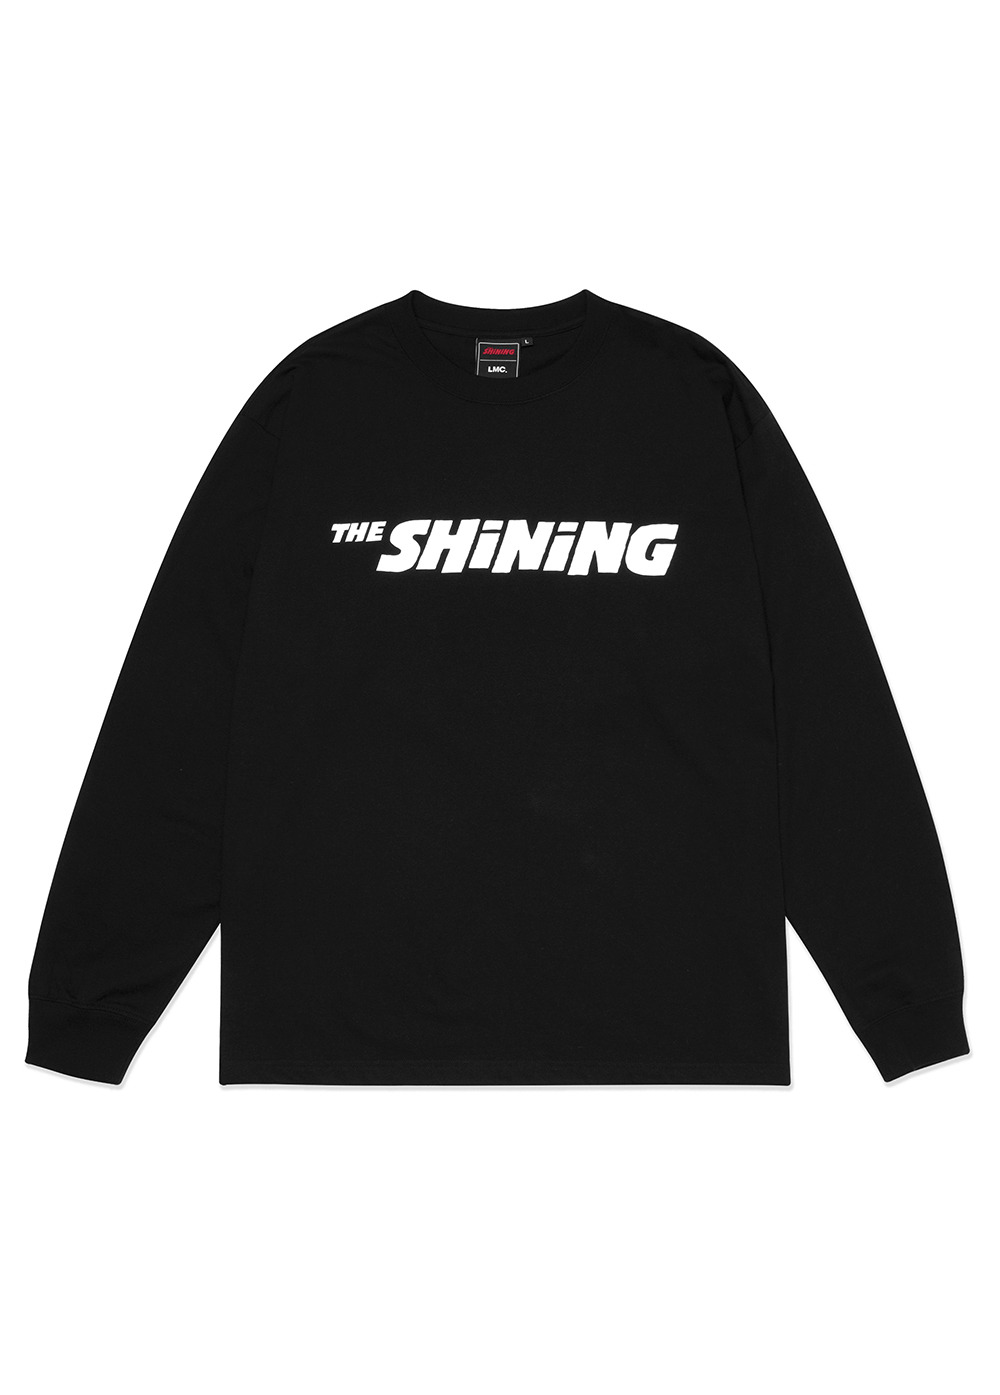 LMC│THE SHINING BASIC LONG SLV TEE black